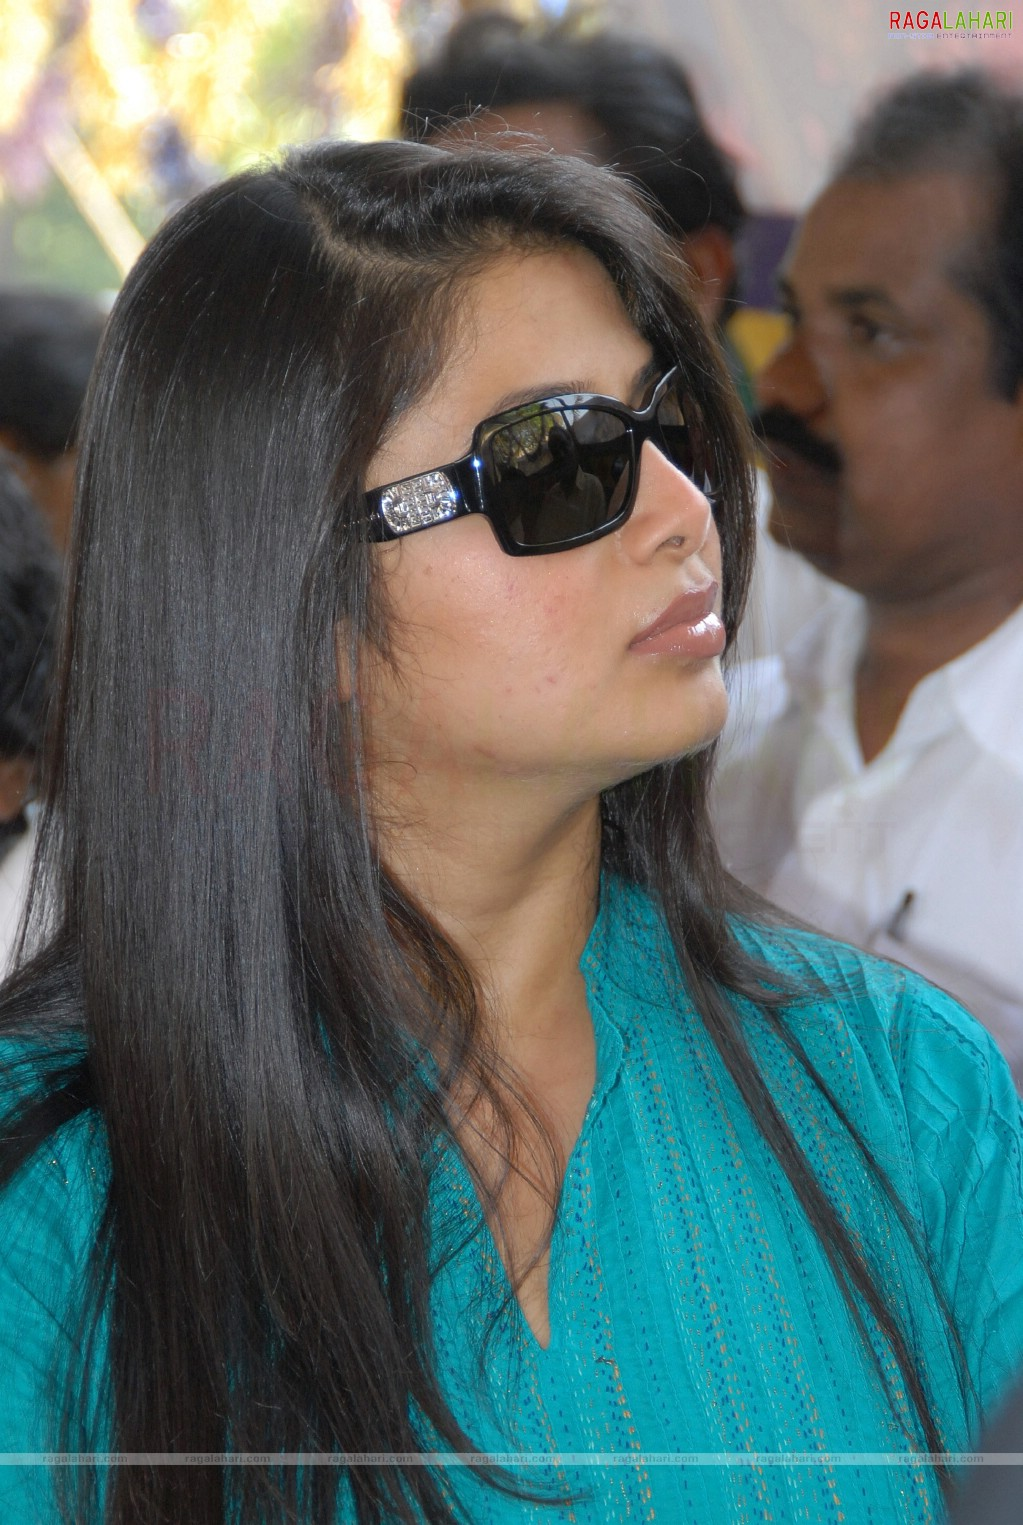 kanakam telugu actress